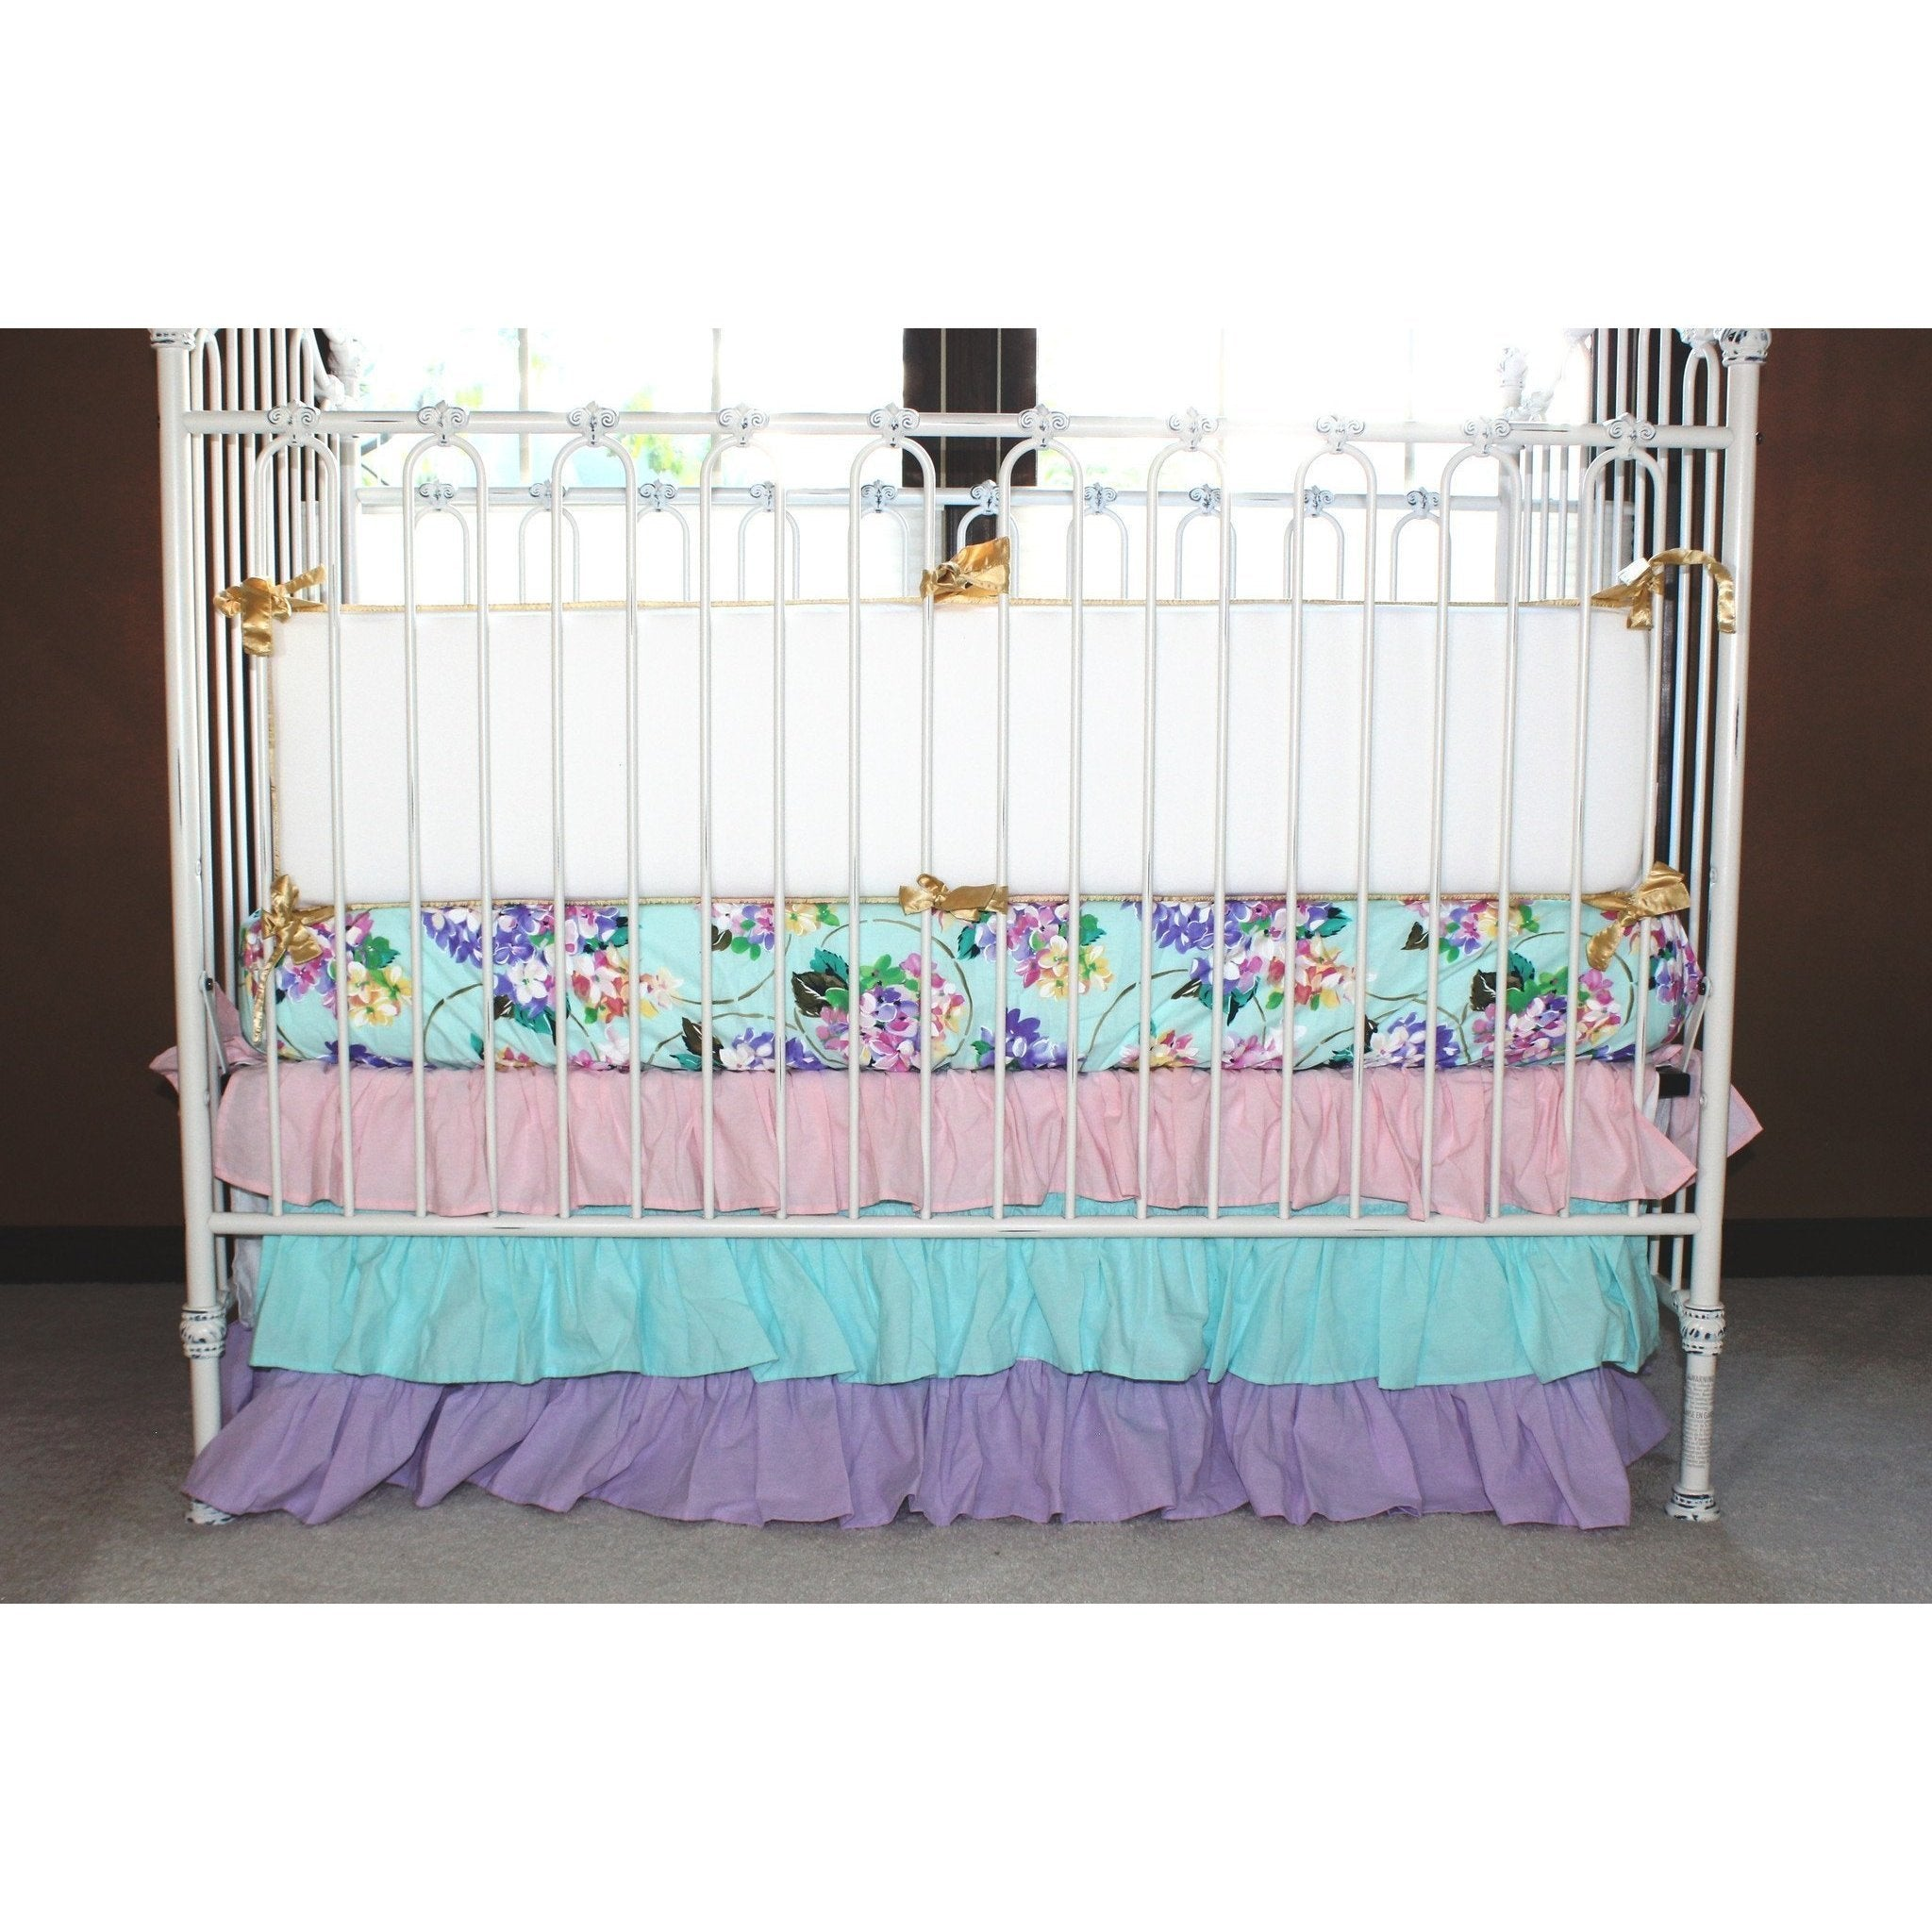 piece b lavender bedding floral creative purple bumper with huge set poppy cribs crib sheets